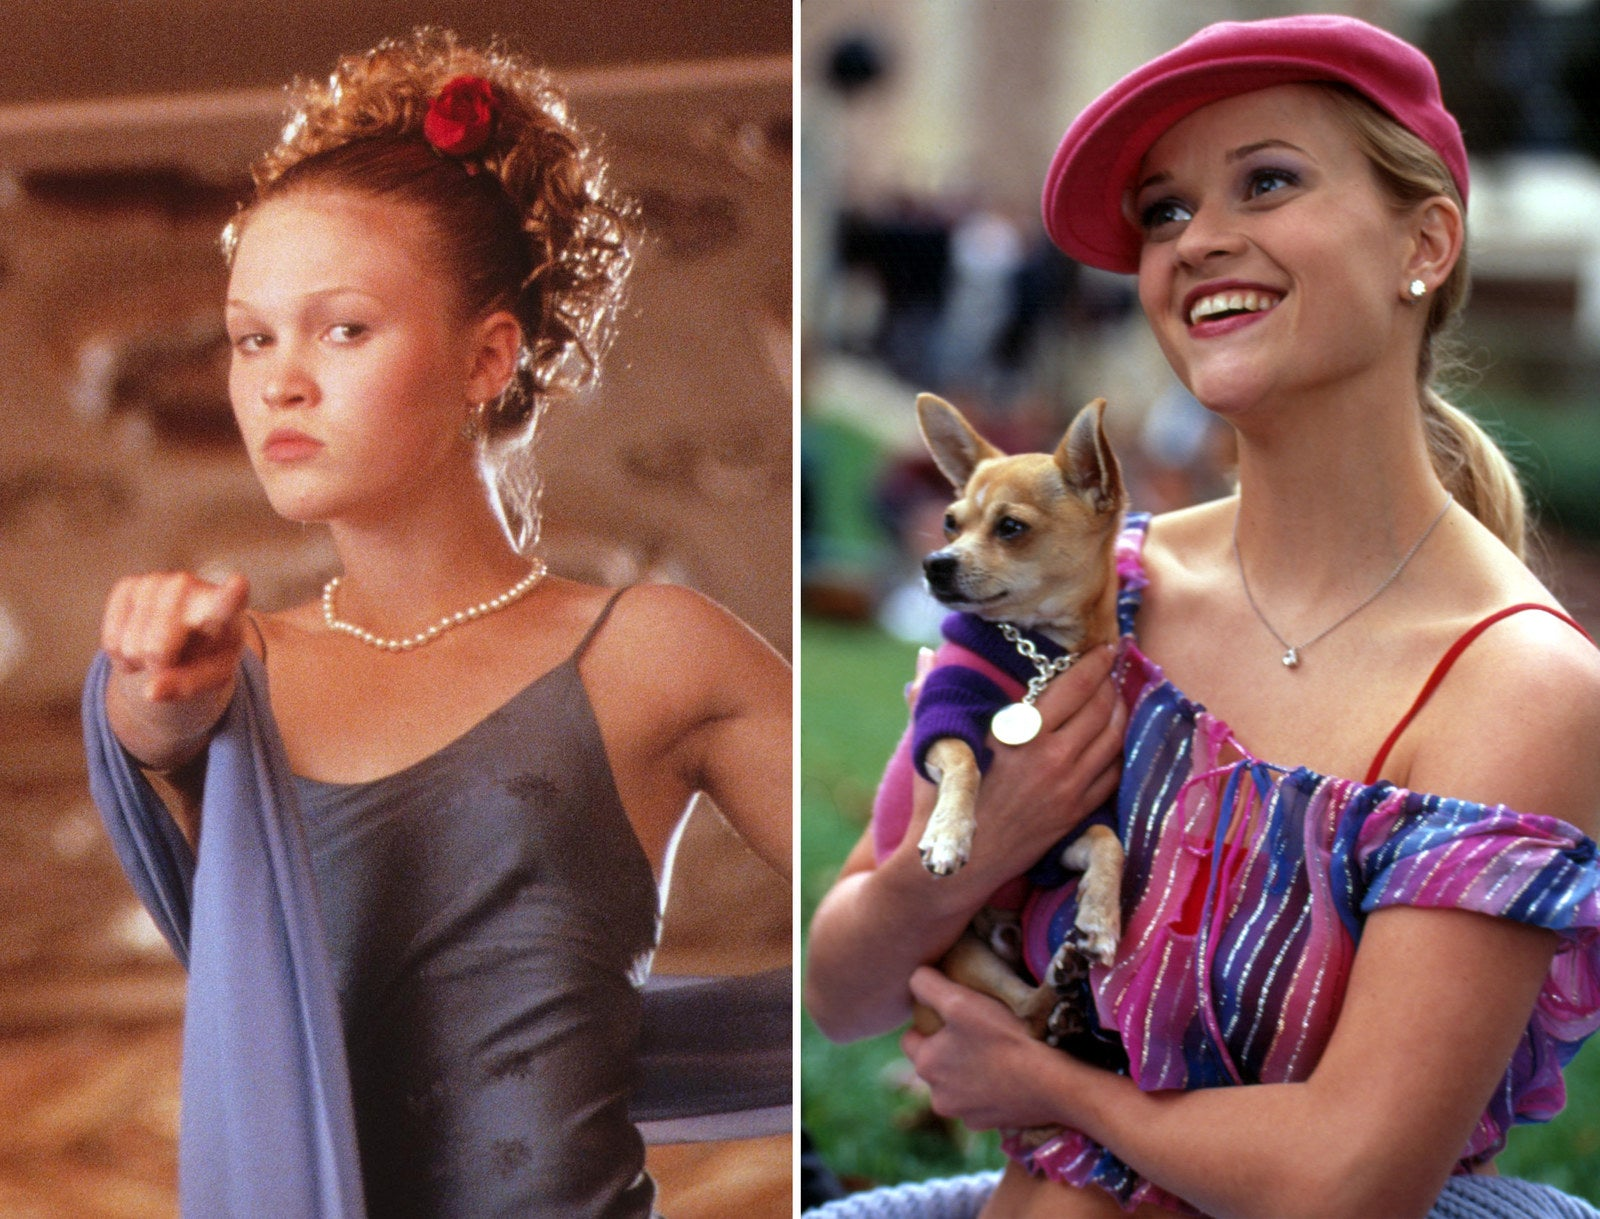 Kat (Julia Stiles) in 10 Things I Hate About You, 1999; and Elle (Reese Witherspoon) in Legally Blonde, 2001.